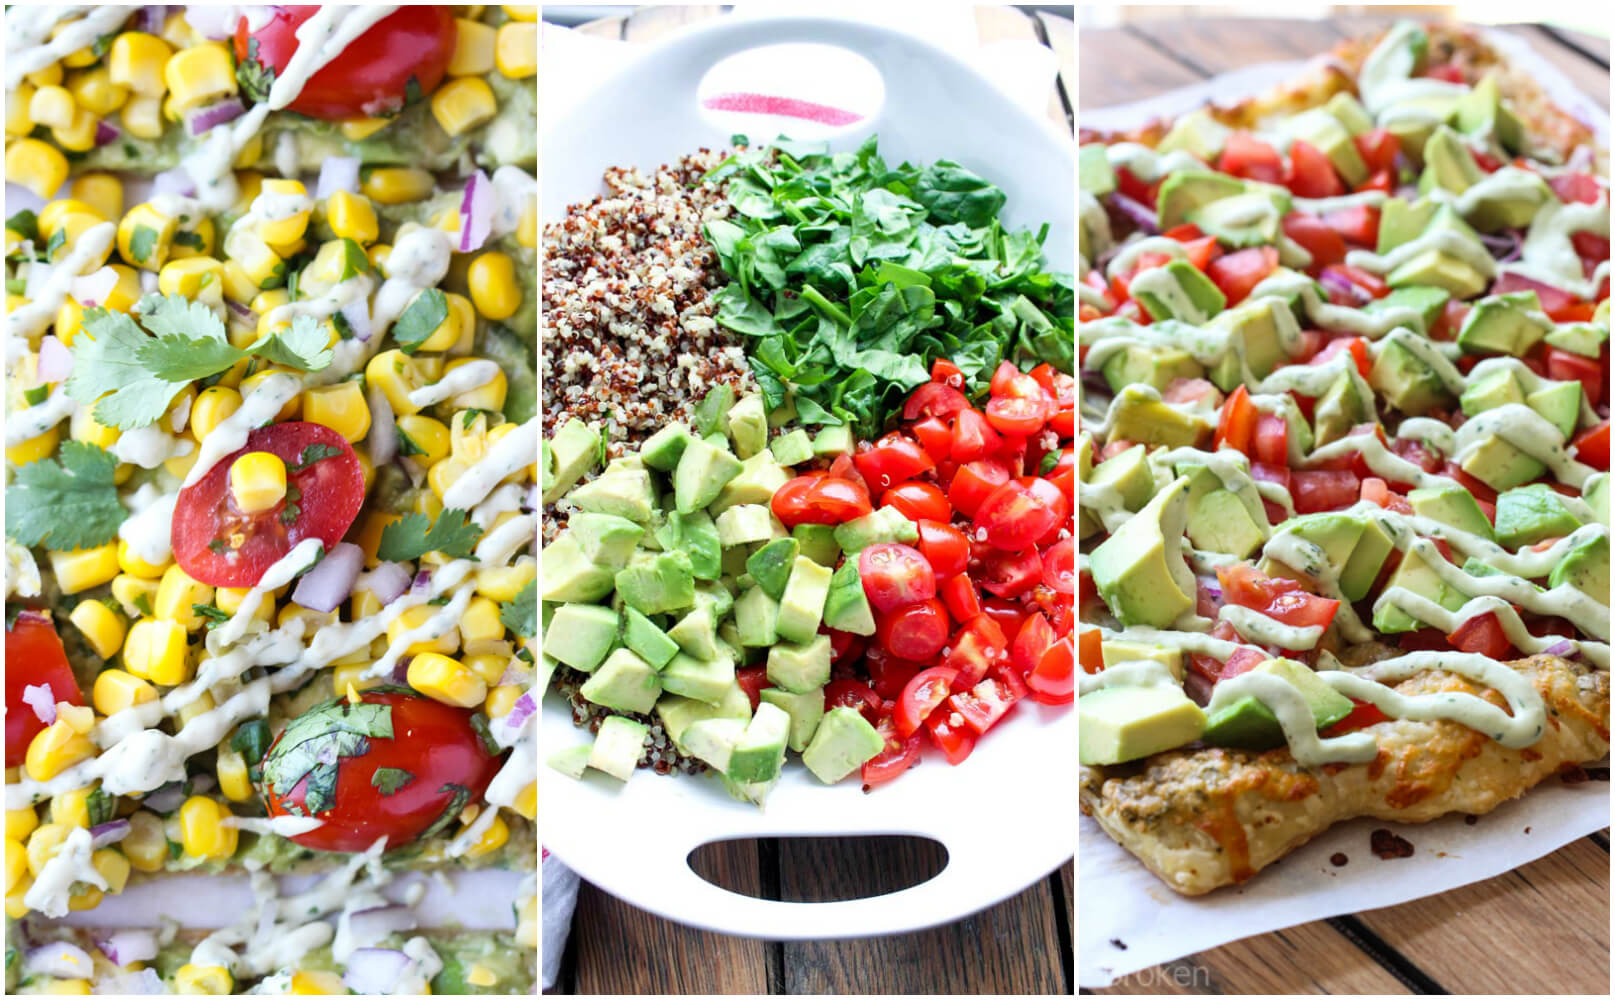 Best avocado recipes + guide to spring produce | littlebroken.com @littlebroken